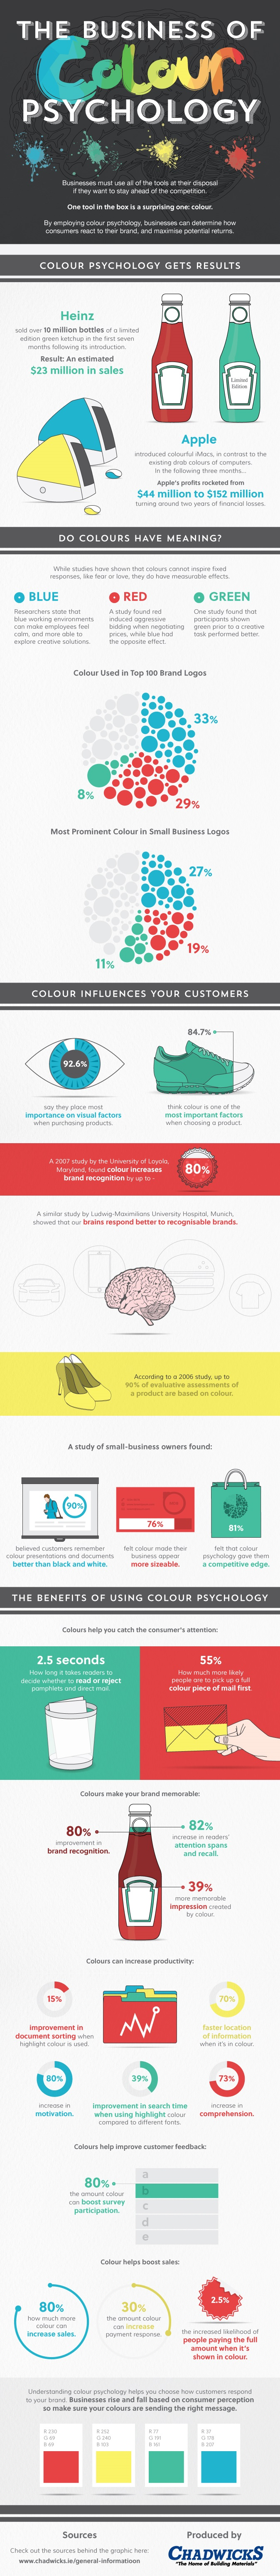 Brand Strategy: The Business of Colour Psychology [Infographic]